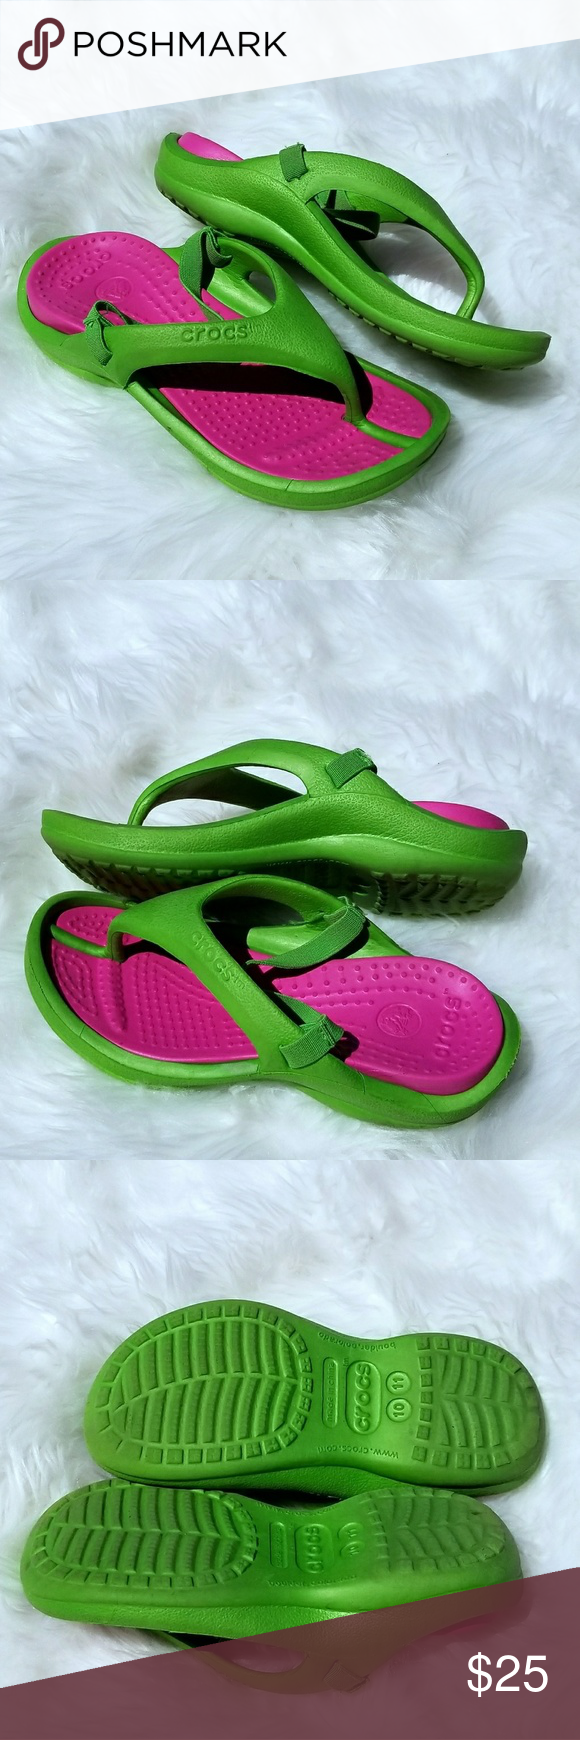 3a405bb9d62441 🎈SALE🎈CROCS Thong Slip On with Heel Straps Pink and green pre loved but